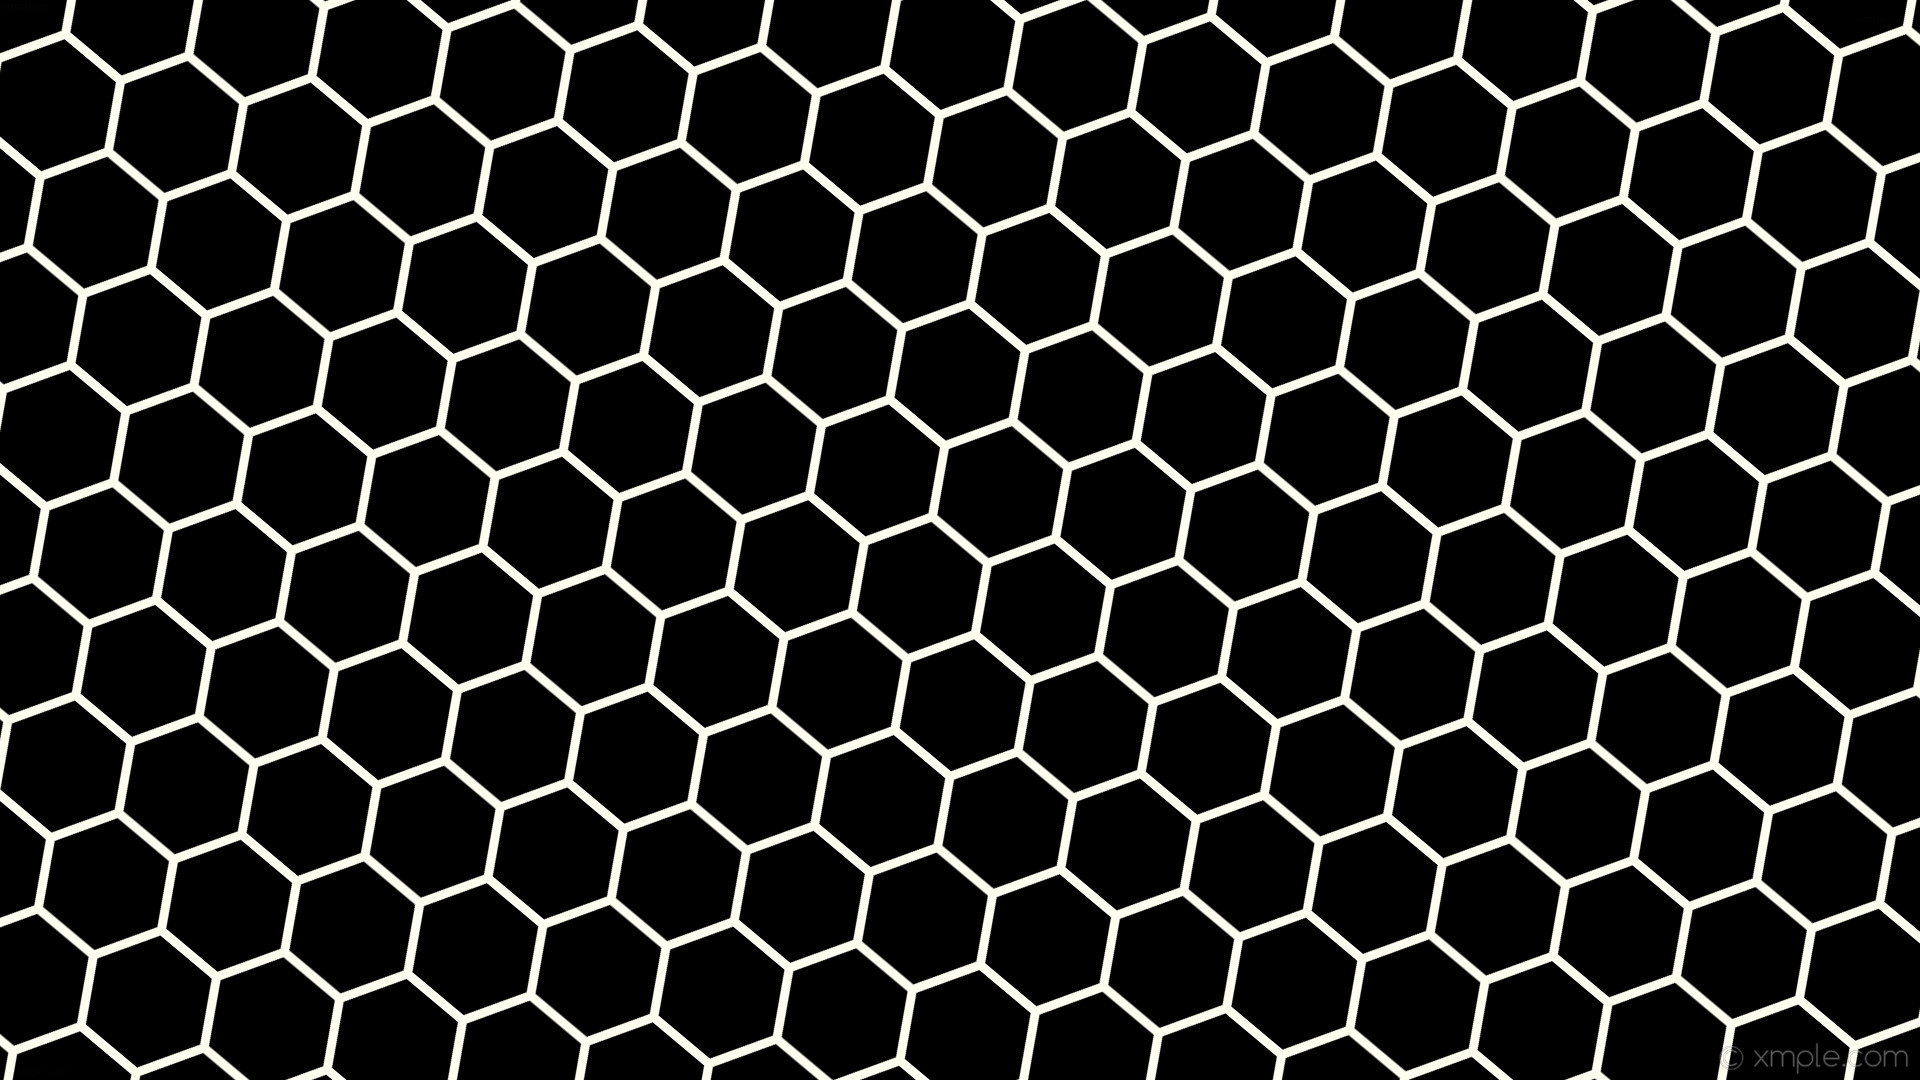 Res: 1920x1080, wallpaper beehive black honeycomb white hexagon ivory #000000 #fffff0  diagonal 50° 9px 125px